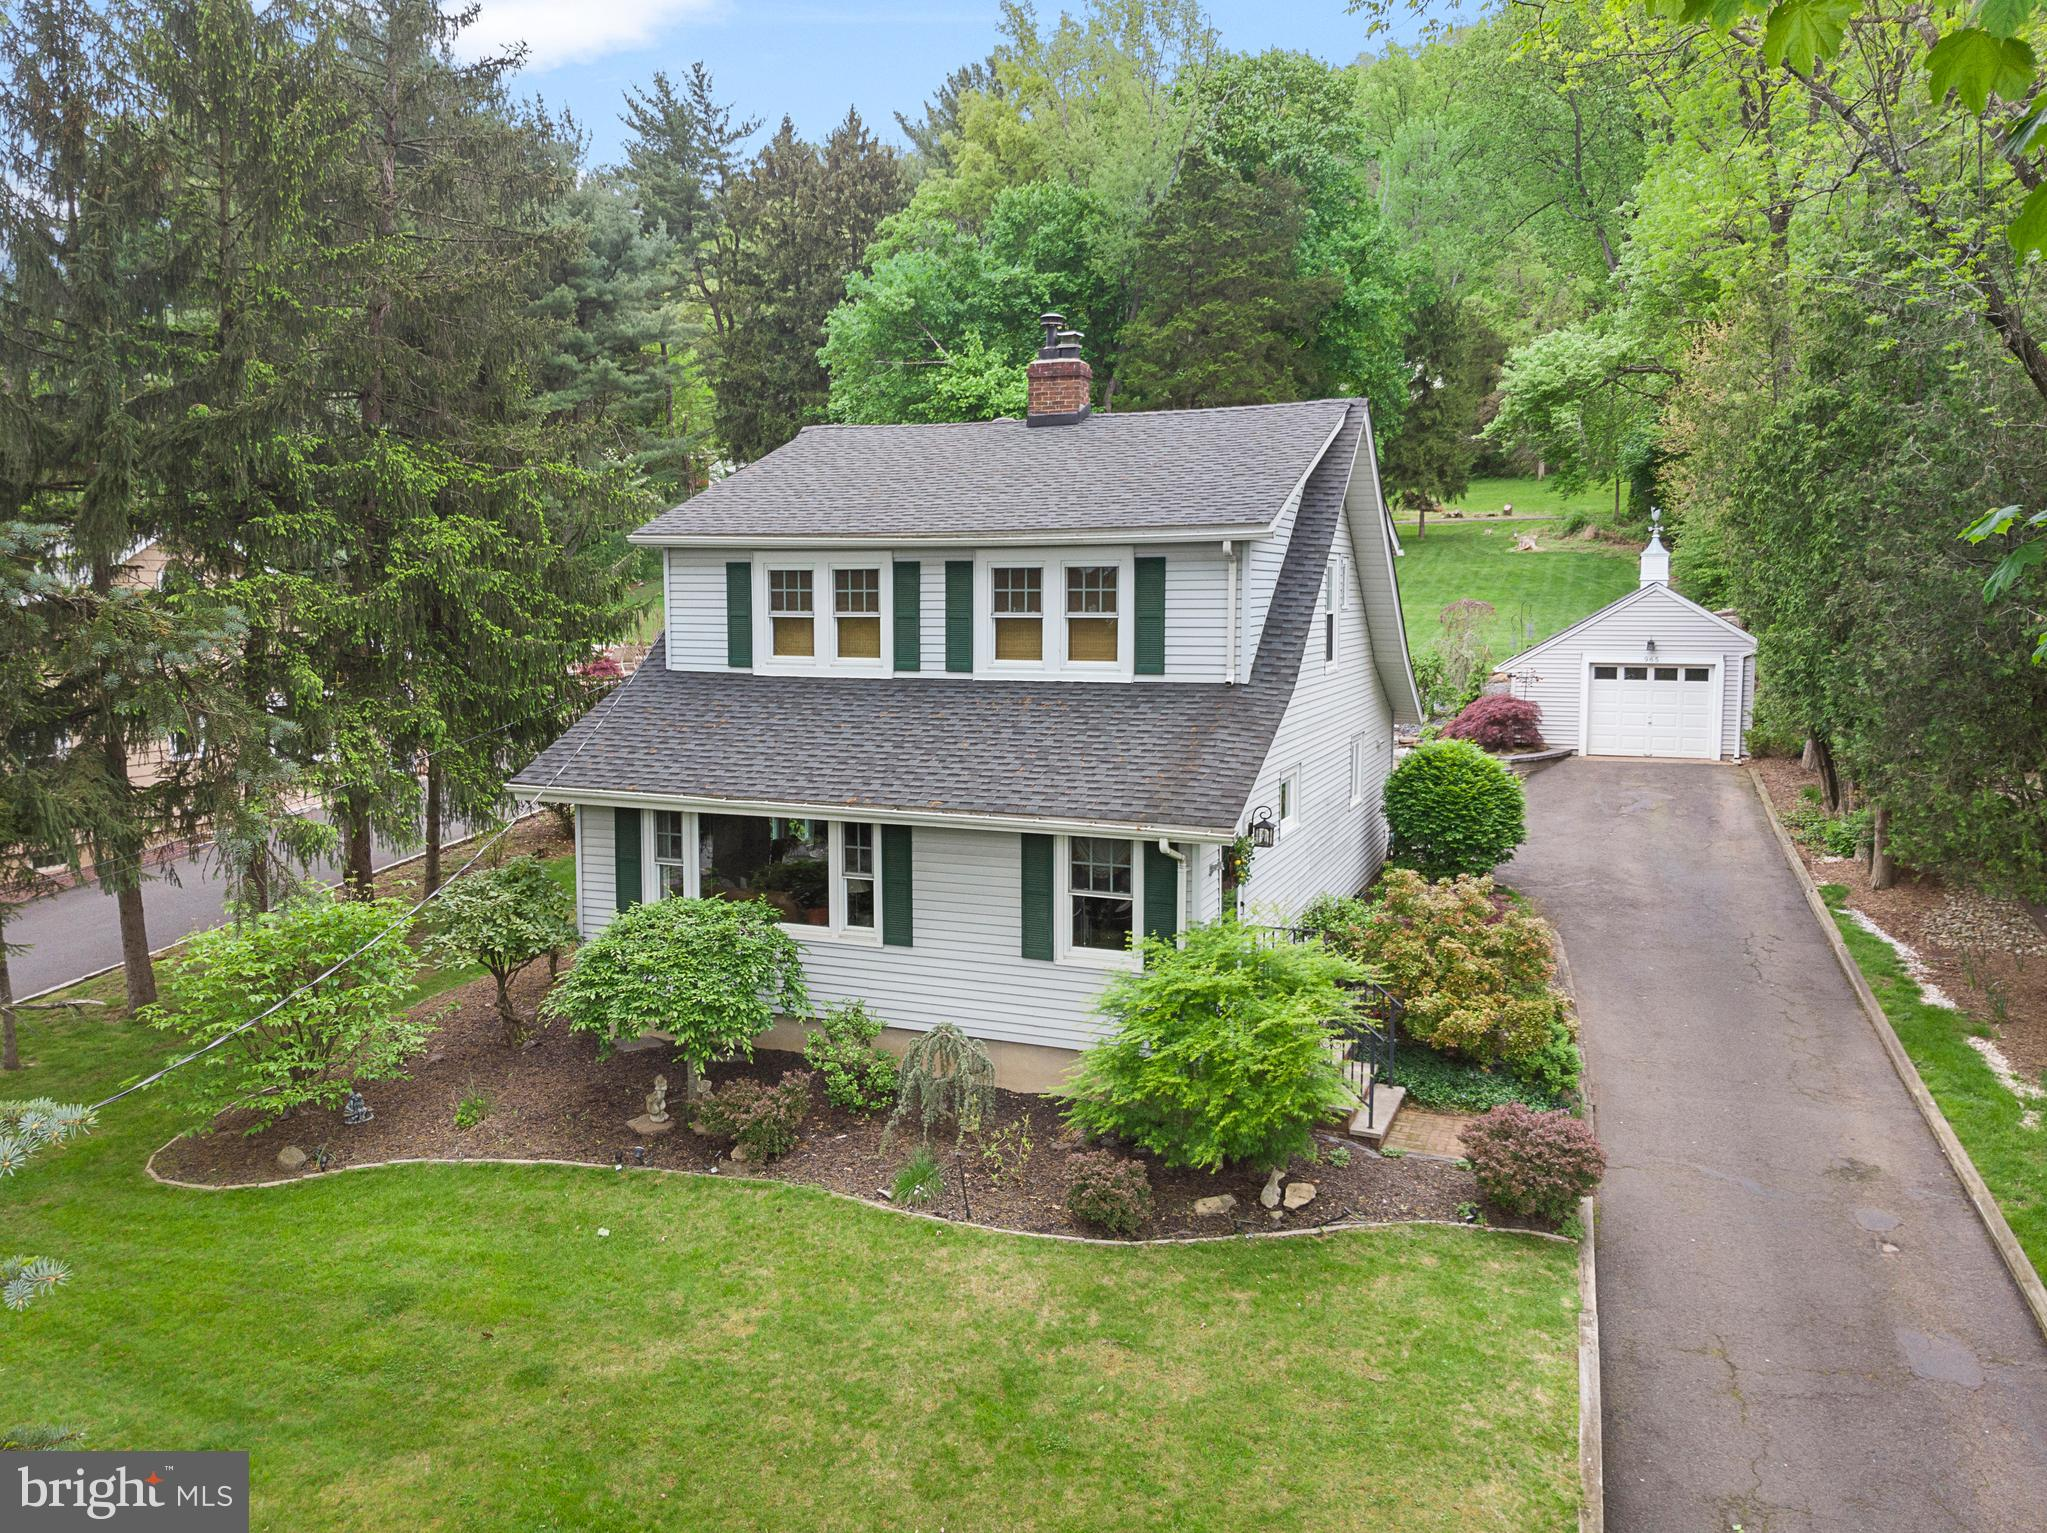 965 WASHINGTON VALLEY ROAD, BASKING RIDGE, NJ 07920